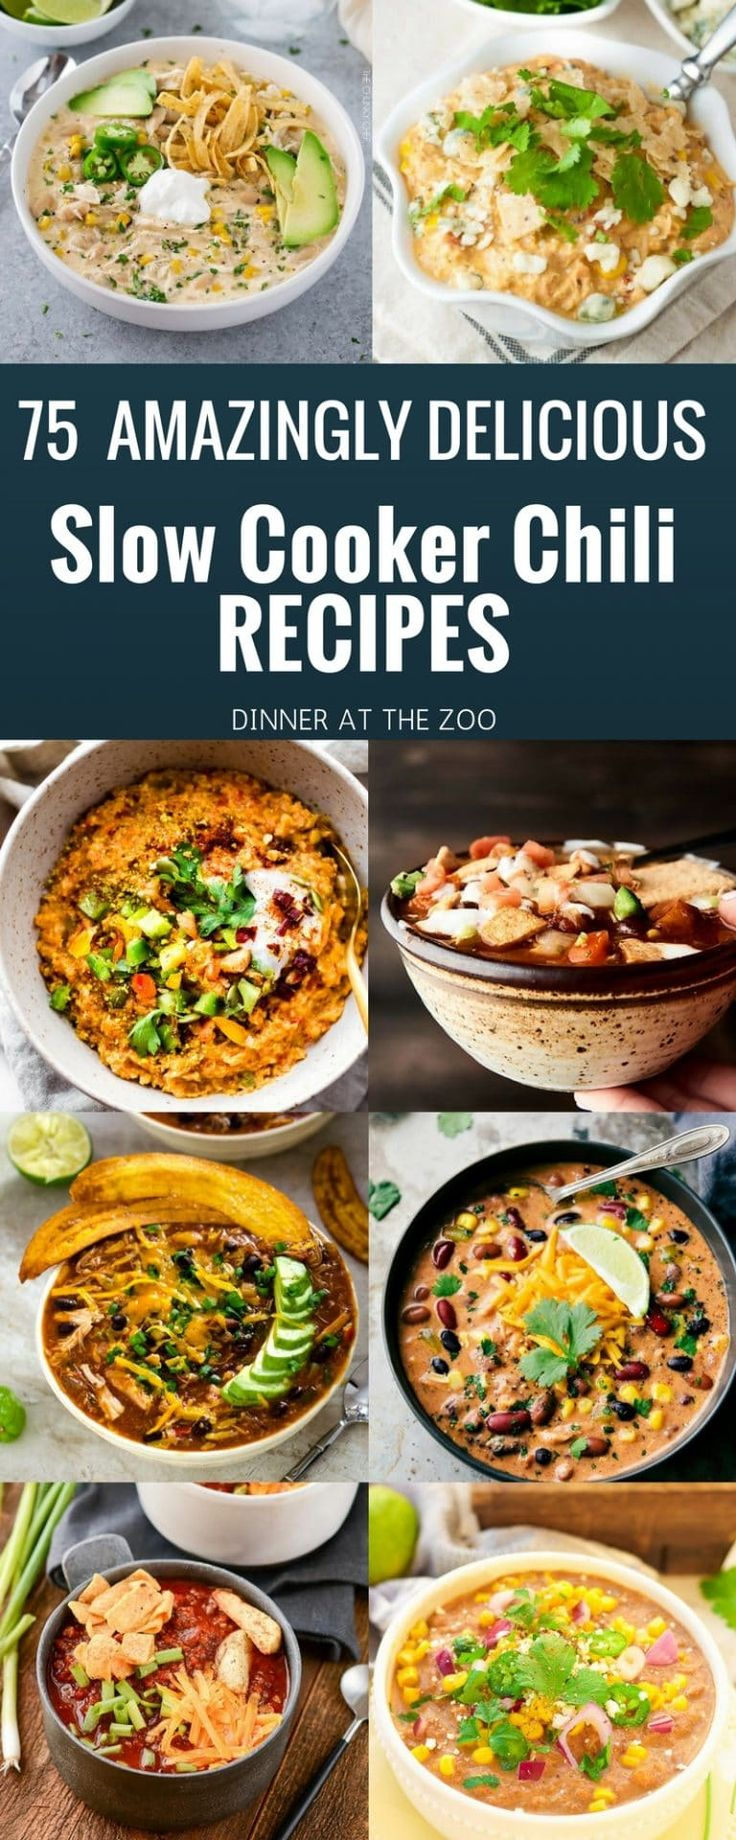 75 Amazingly Delicious Slow Cooker Chili Recipes